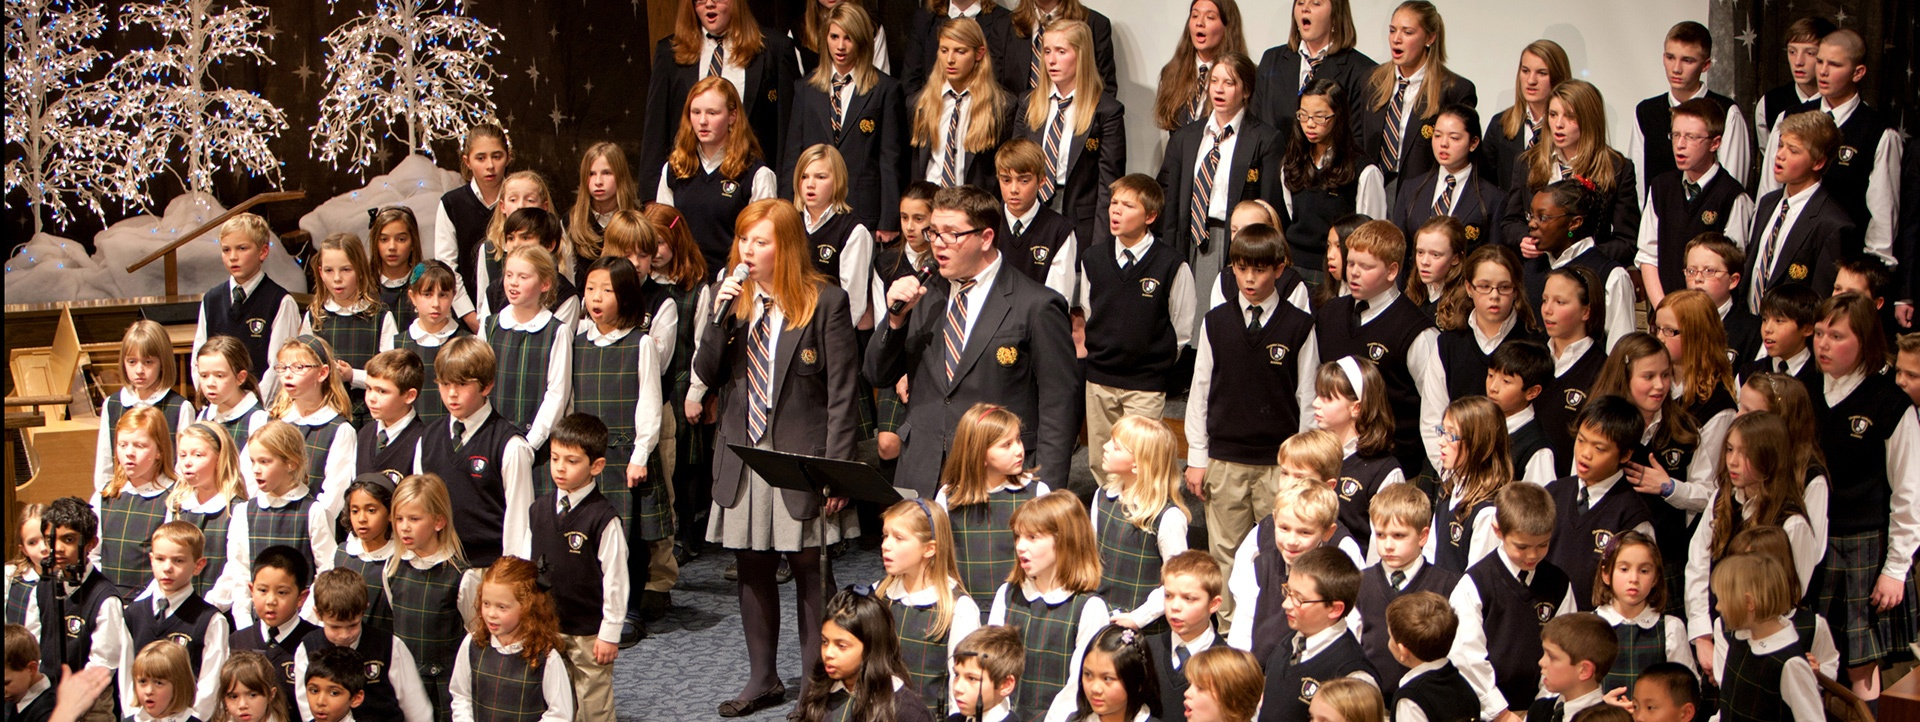 Christian Education What is Classical Education